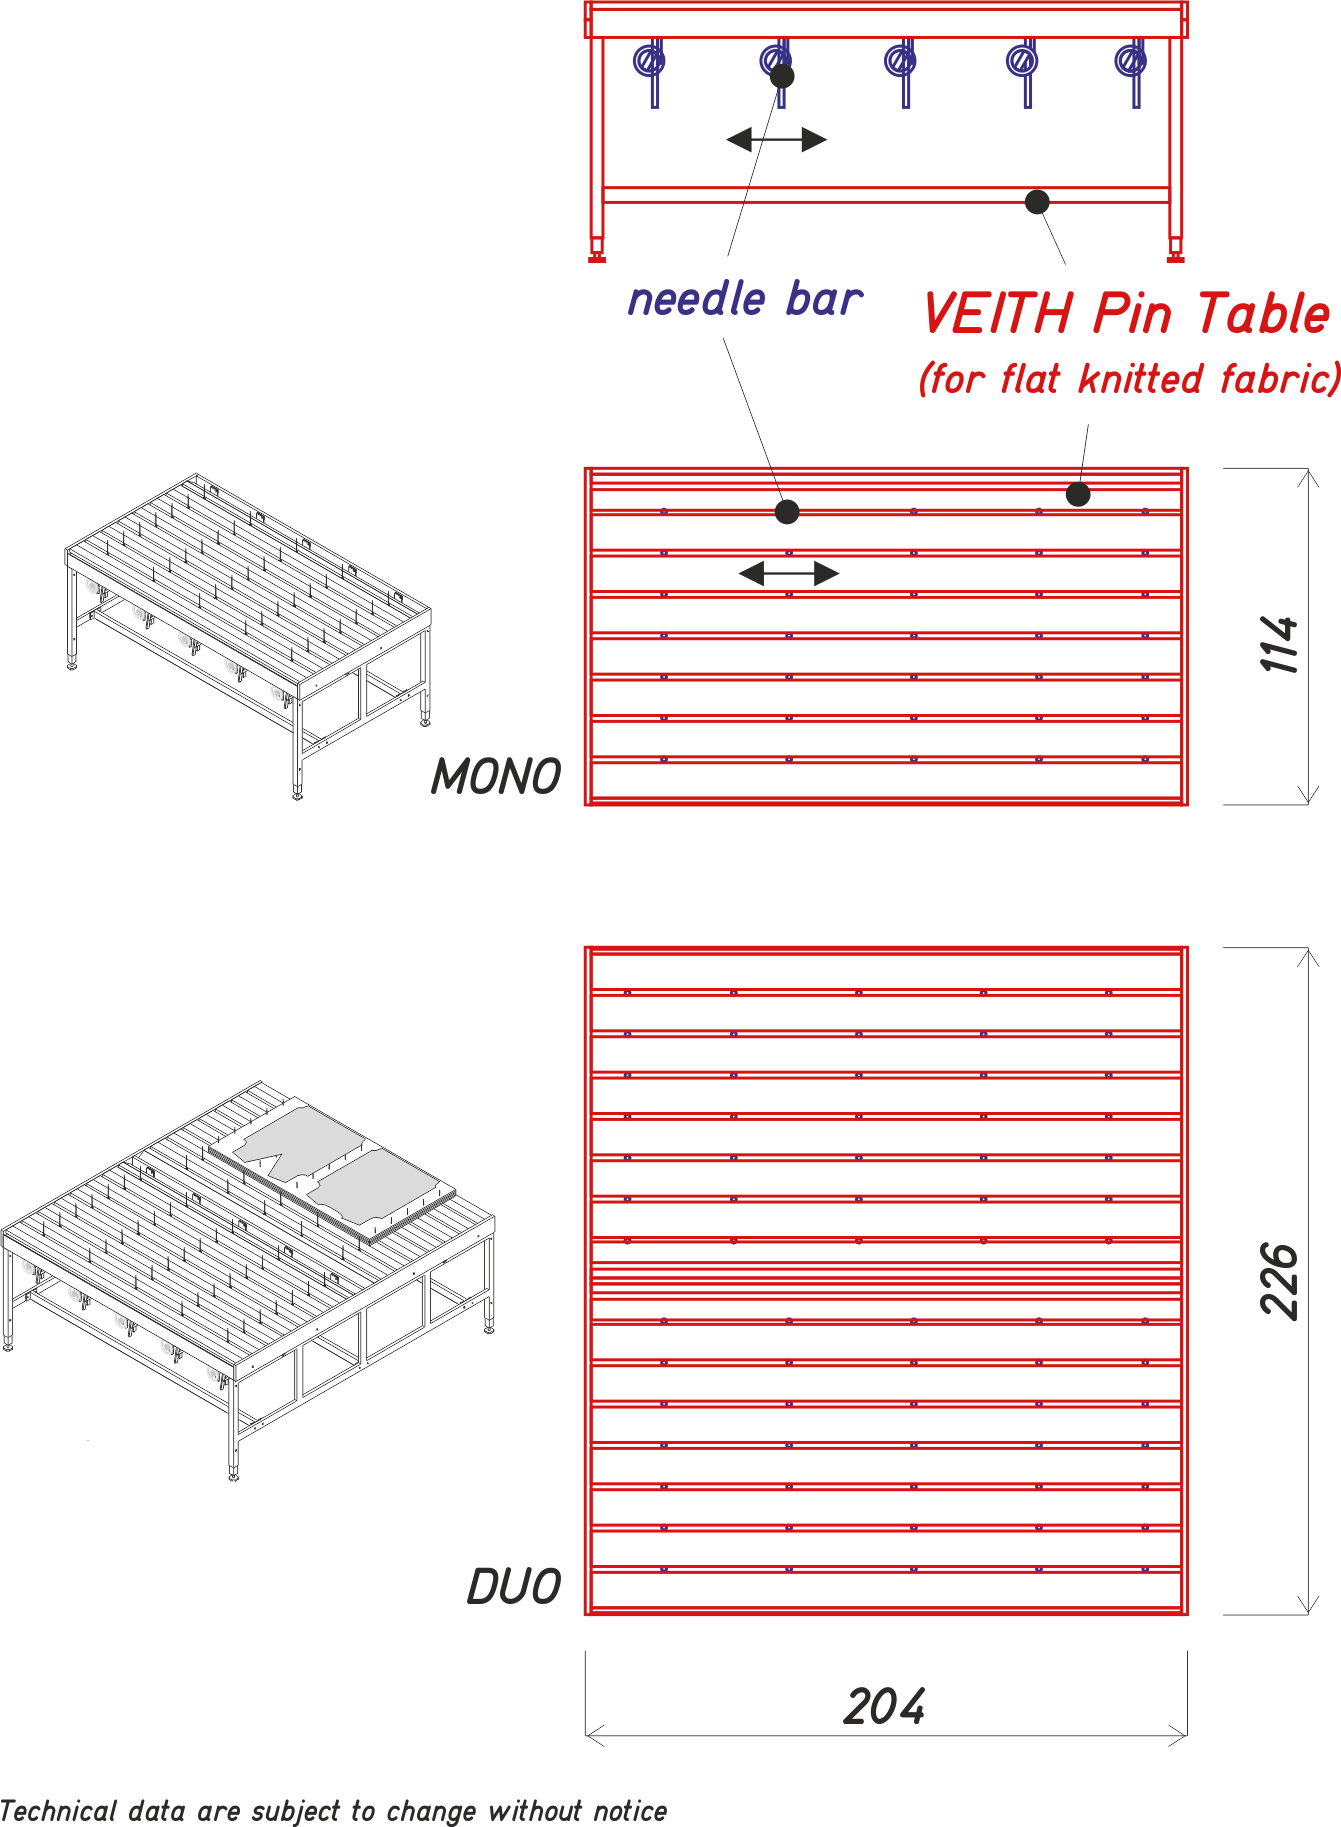 Veith Pin Table- flat knit-tech. data